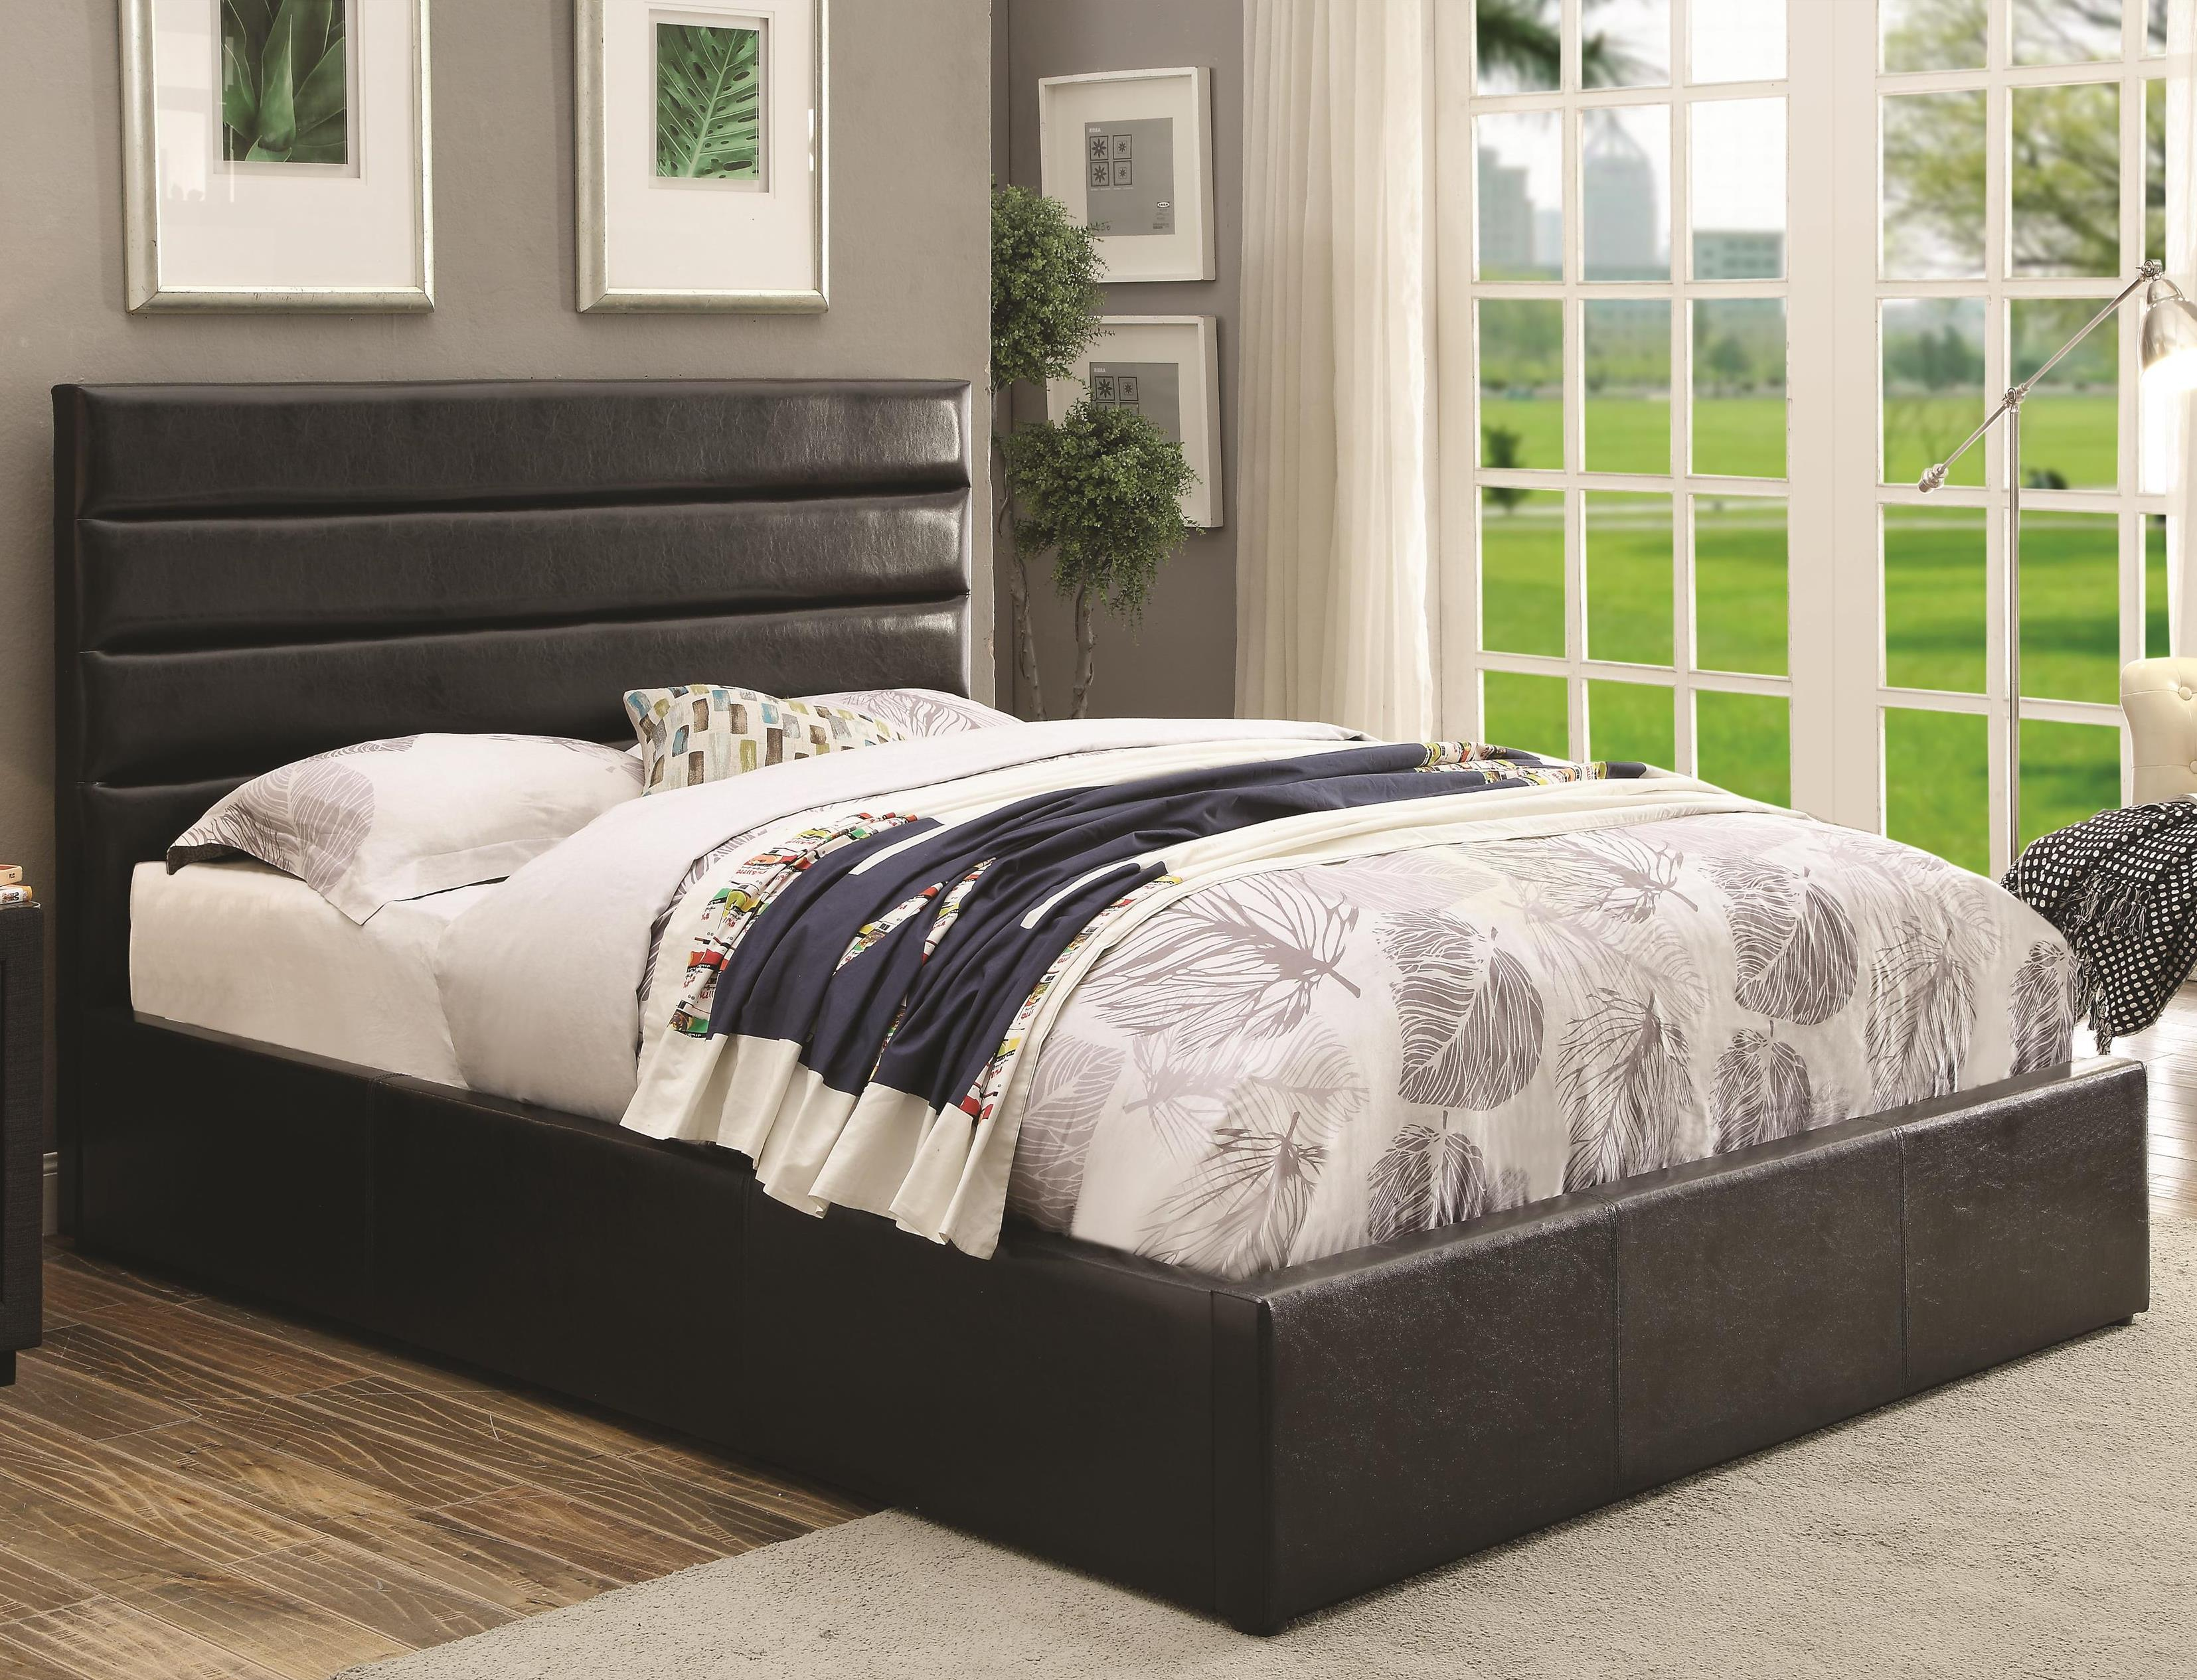 Coaster Riverbend California King Bed - Item Number: 300469KW